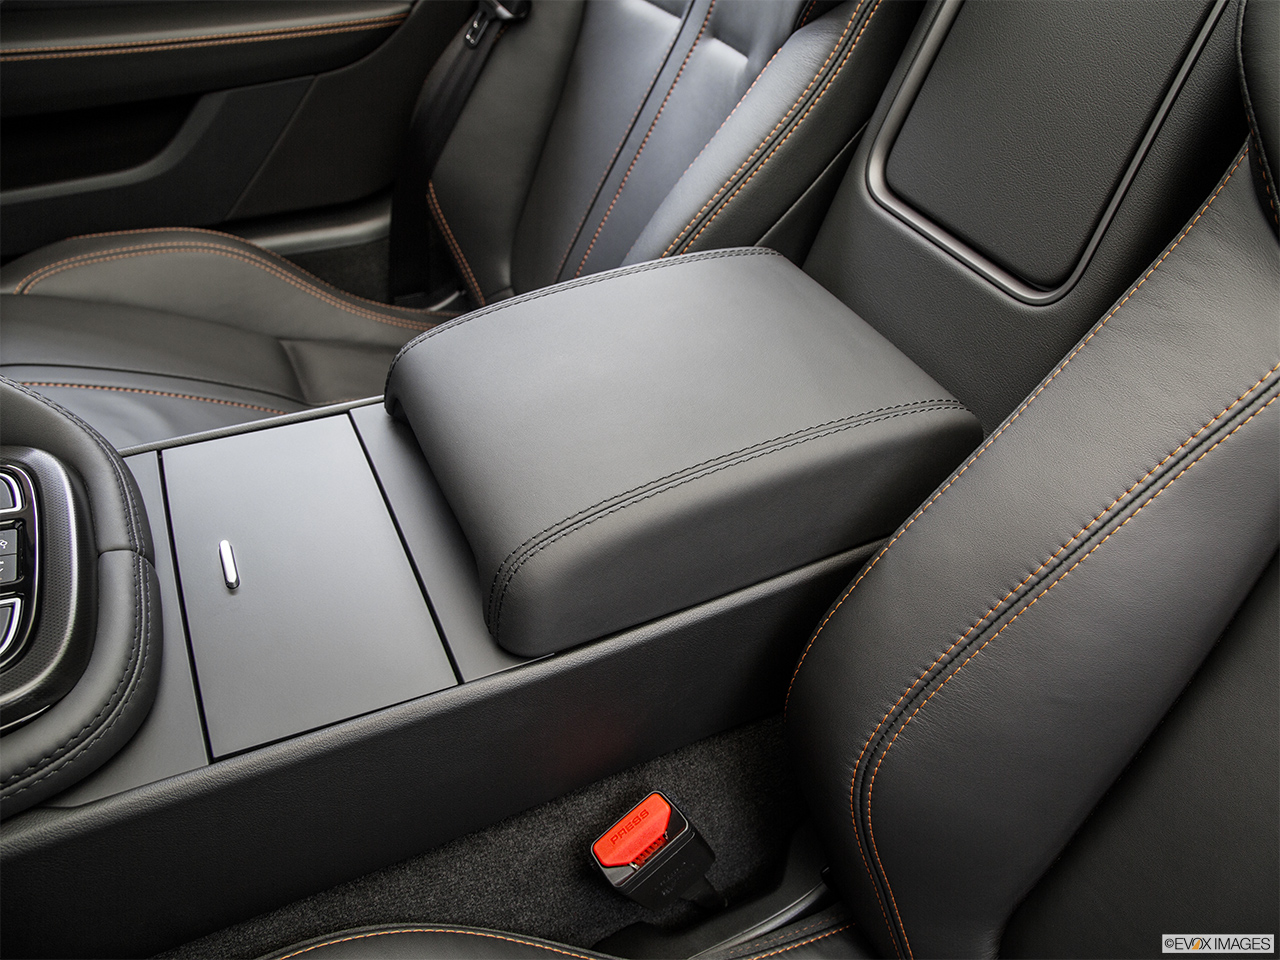 2015 Jaguar F-Type Convertible V8 S Front center console with closed lid, from driver's side looking down